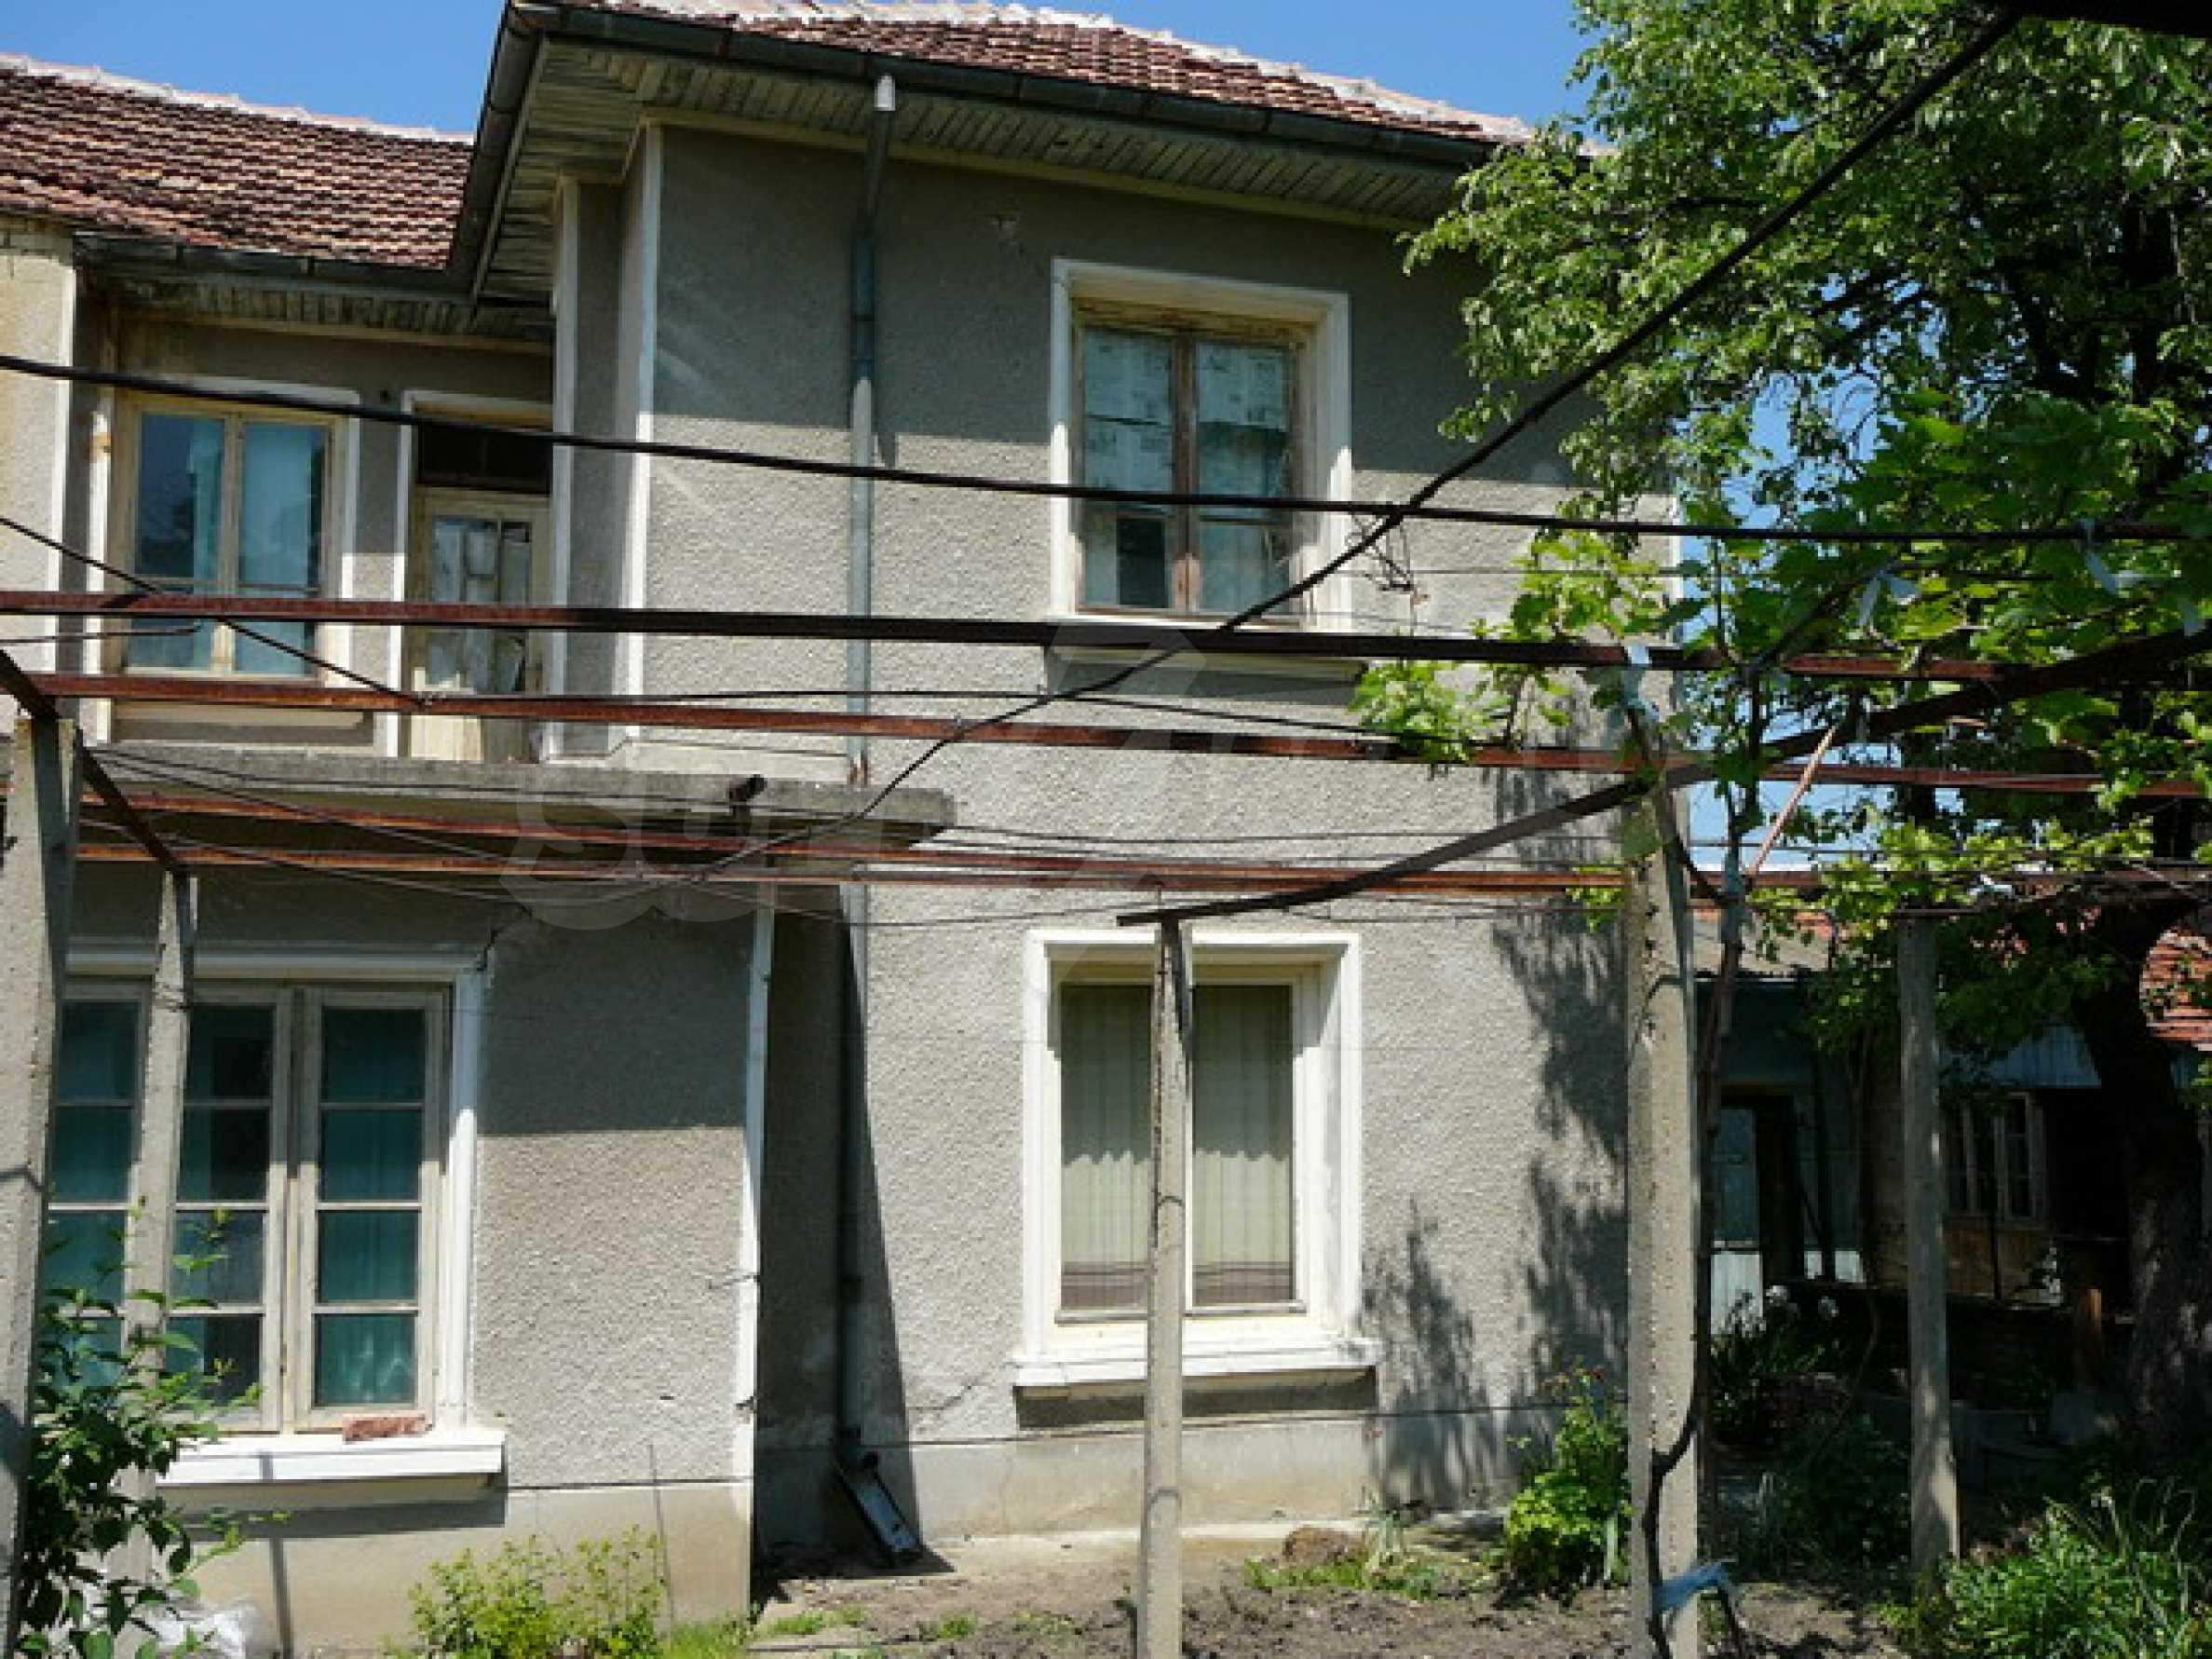 House for sale in a village close to Veliko Tarnovo 8